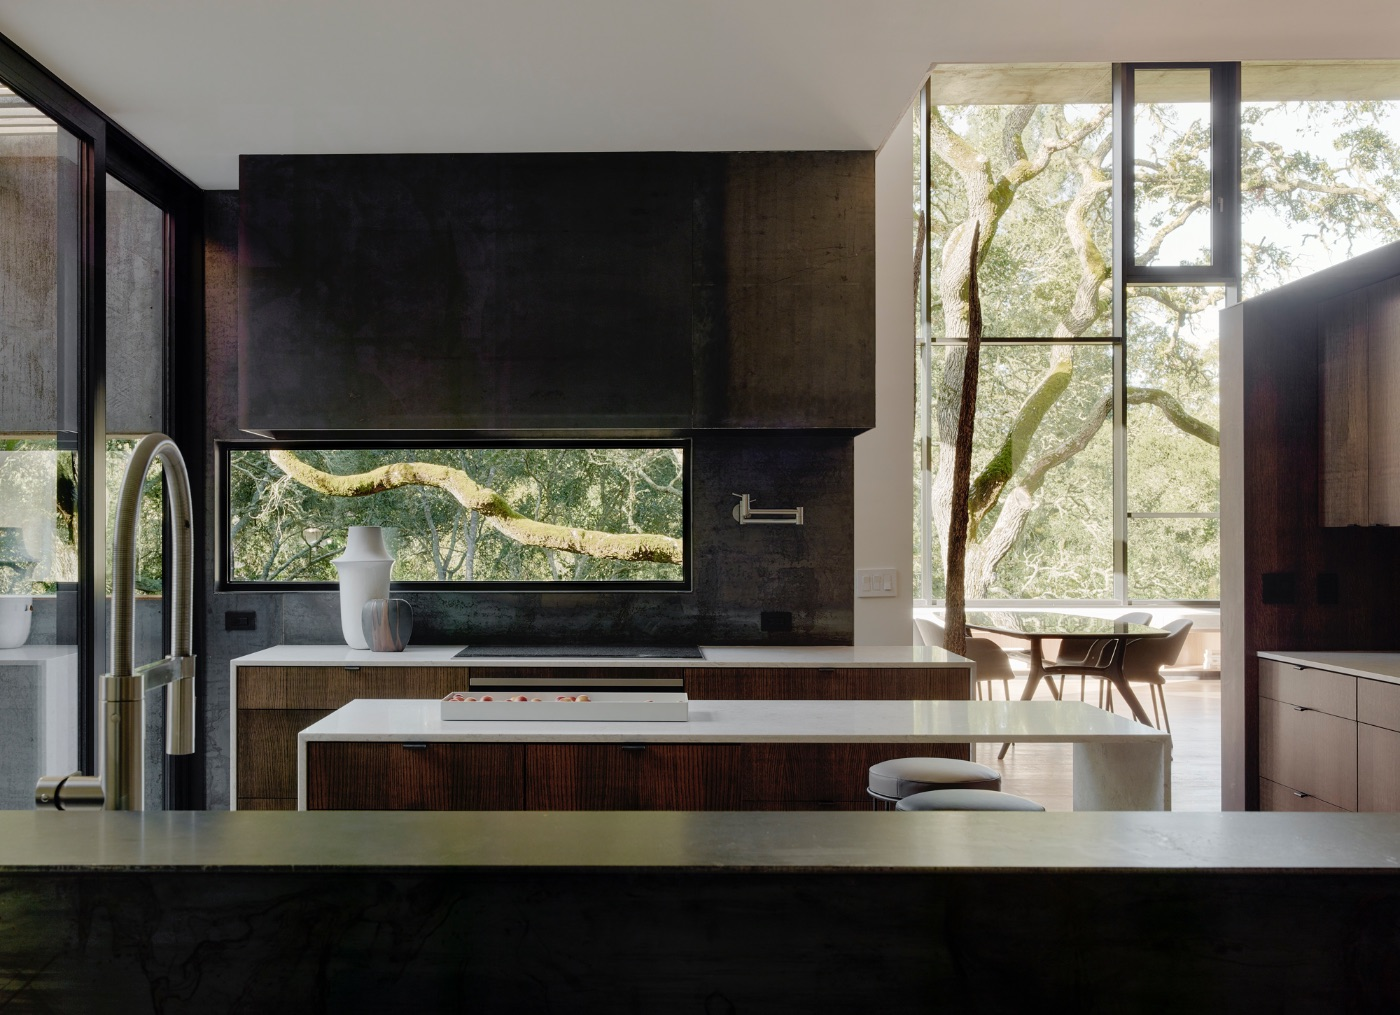 13_Miner Road House_Faulkner Architects_Inspirationist